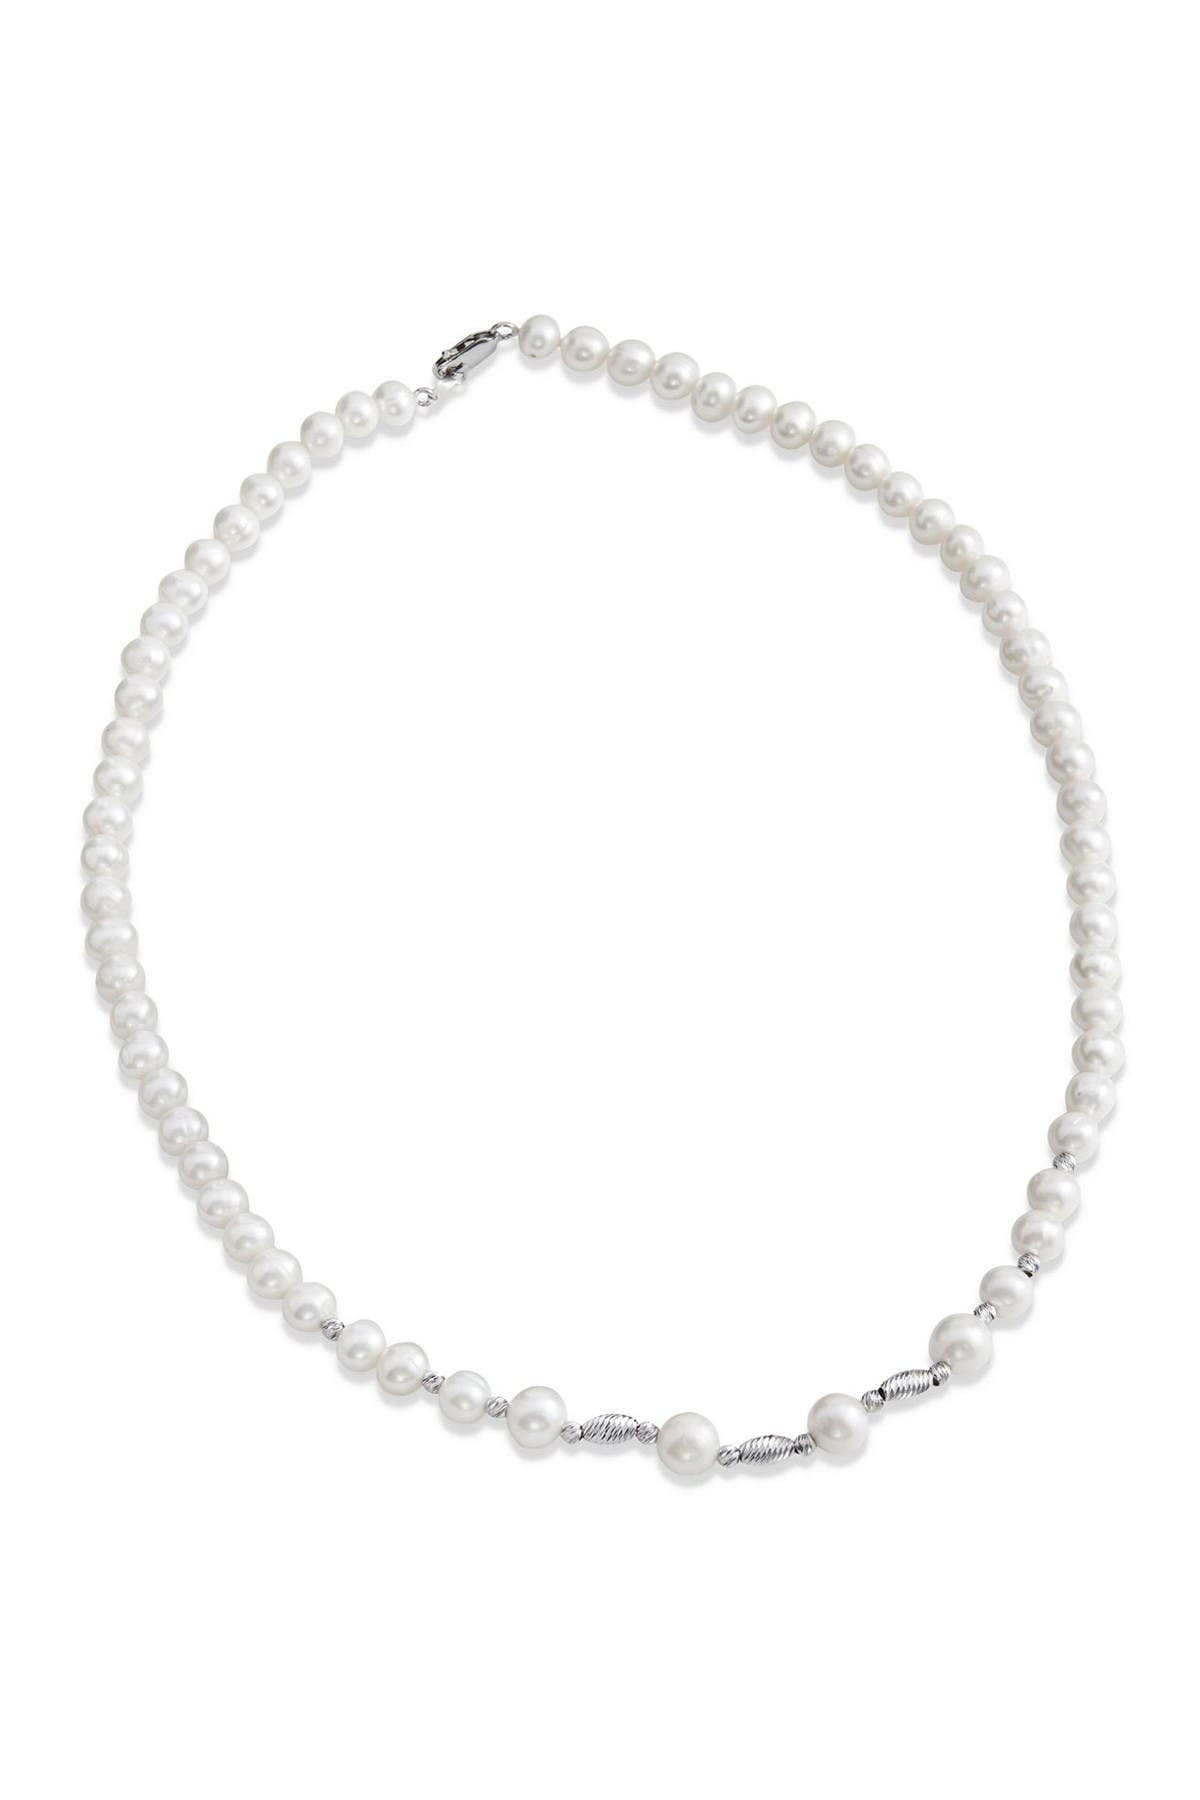 Image of Savvy Cie Sterling Silver 6-7mm Cultured Freshwater Pearl Necklace